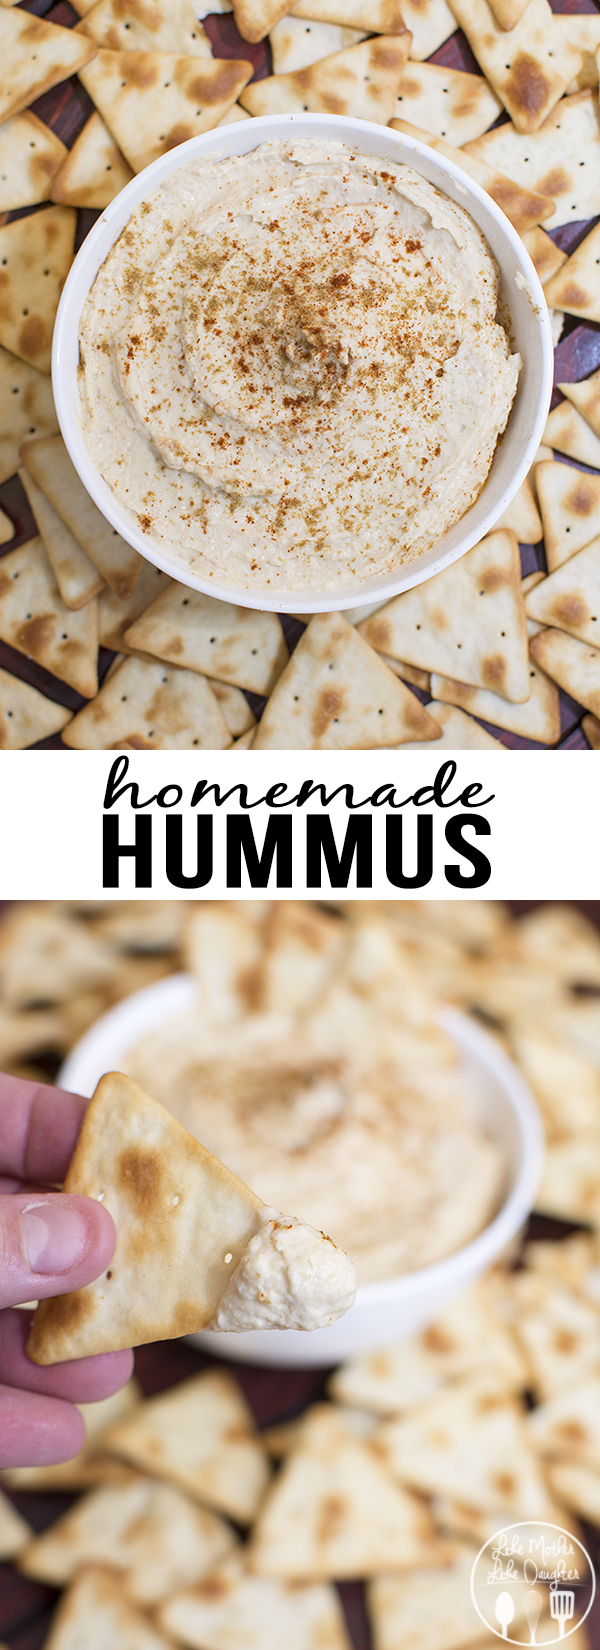 Homemade Hummus - this flavorful homemade hummus can be made in less than 5 minutes for a healthy snack or appetizer.Homemade Hummus - this flavorful homemade hummus can be made in less than 5 minutes for a healthy snack or appetizer.